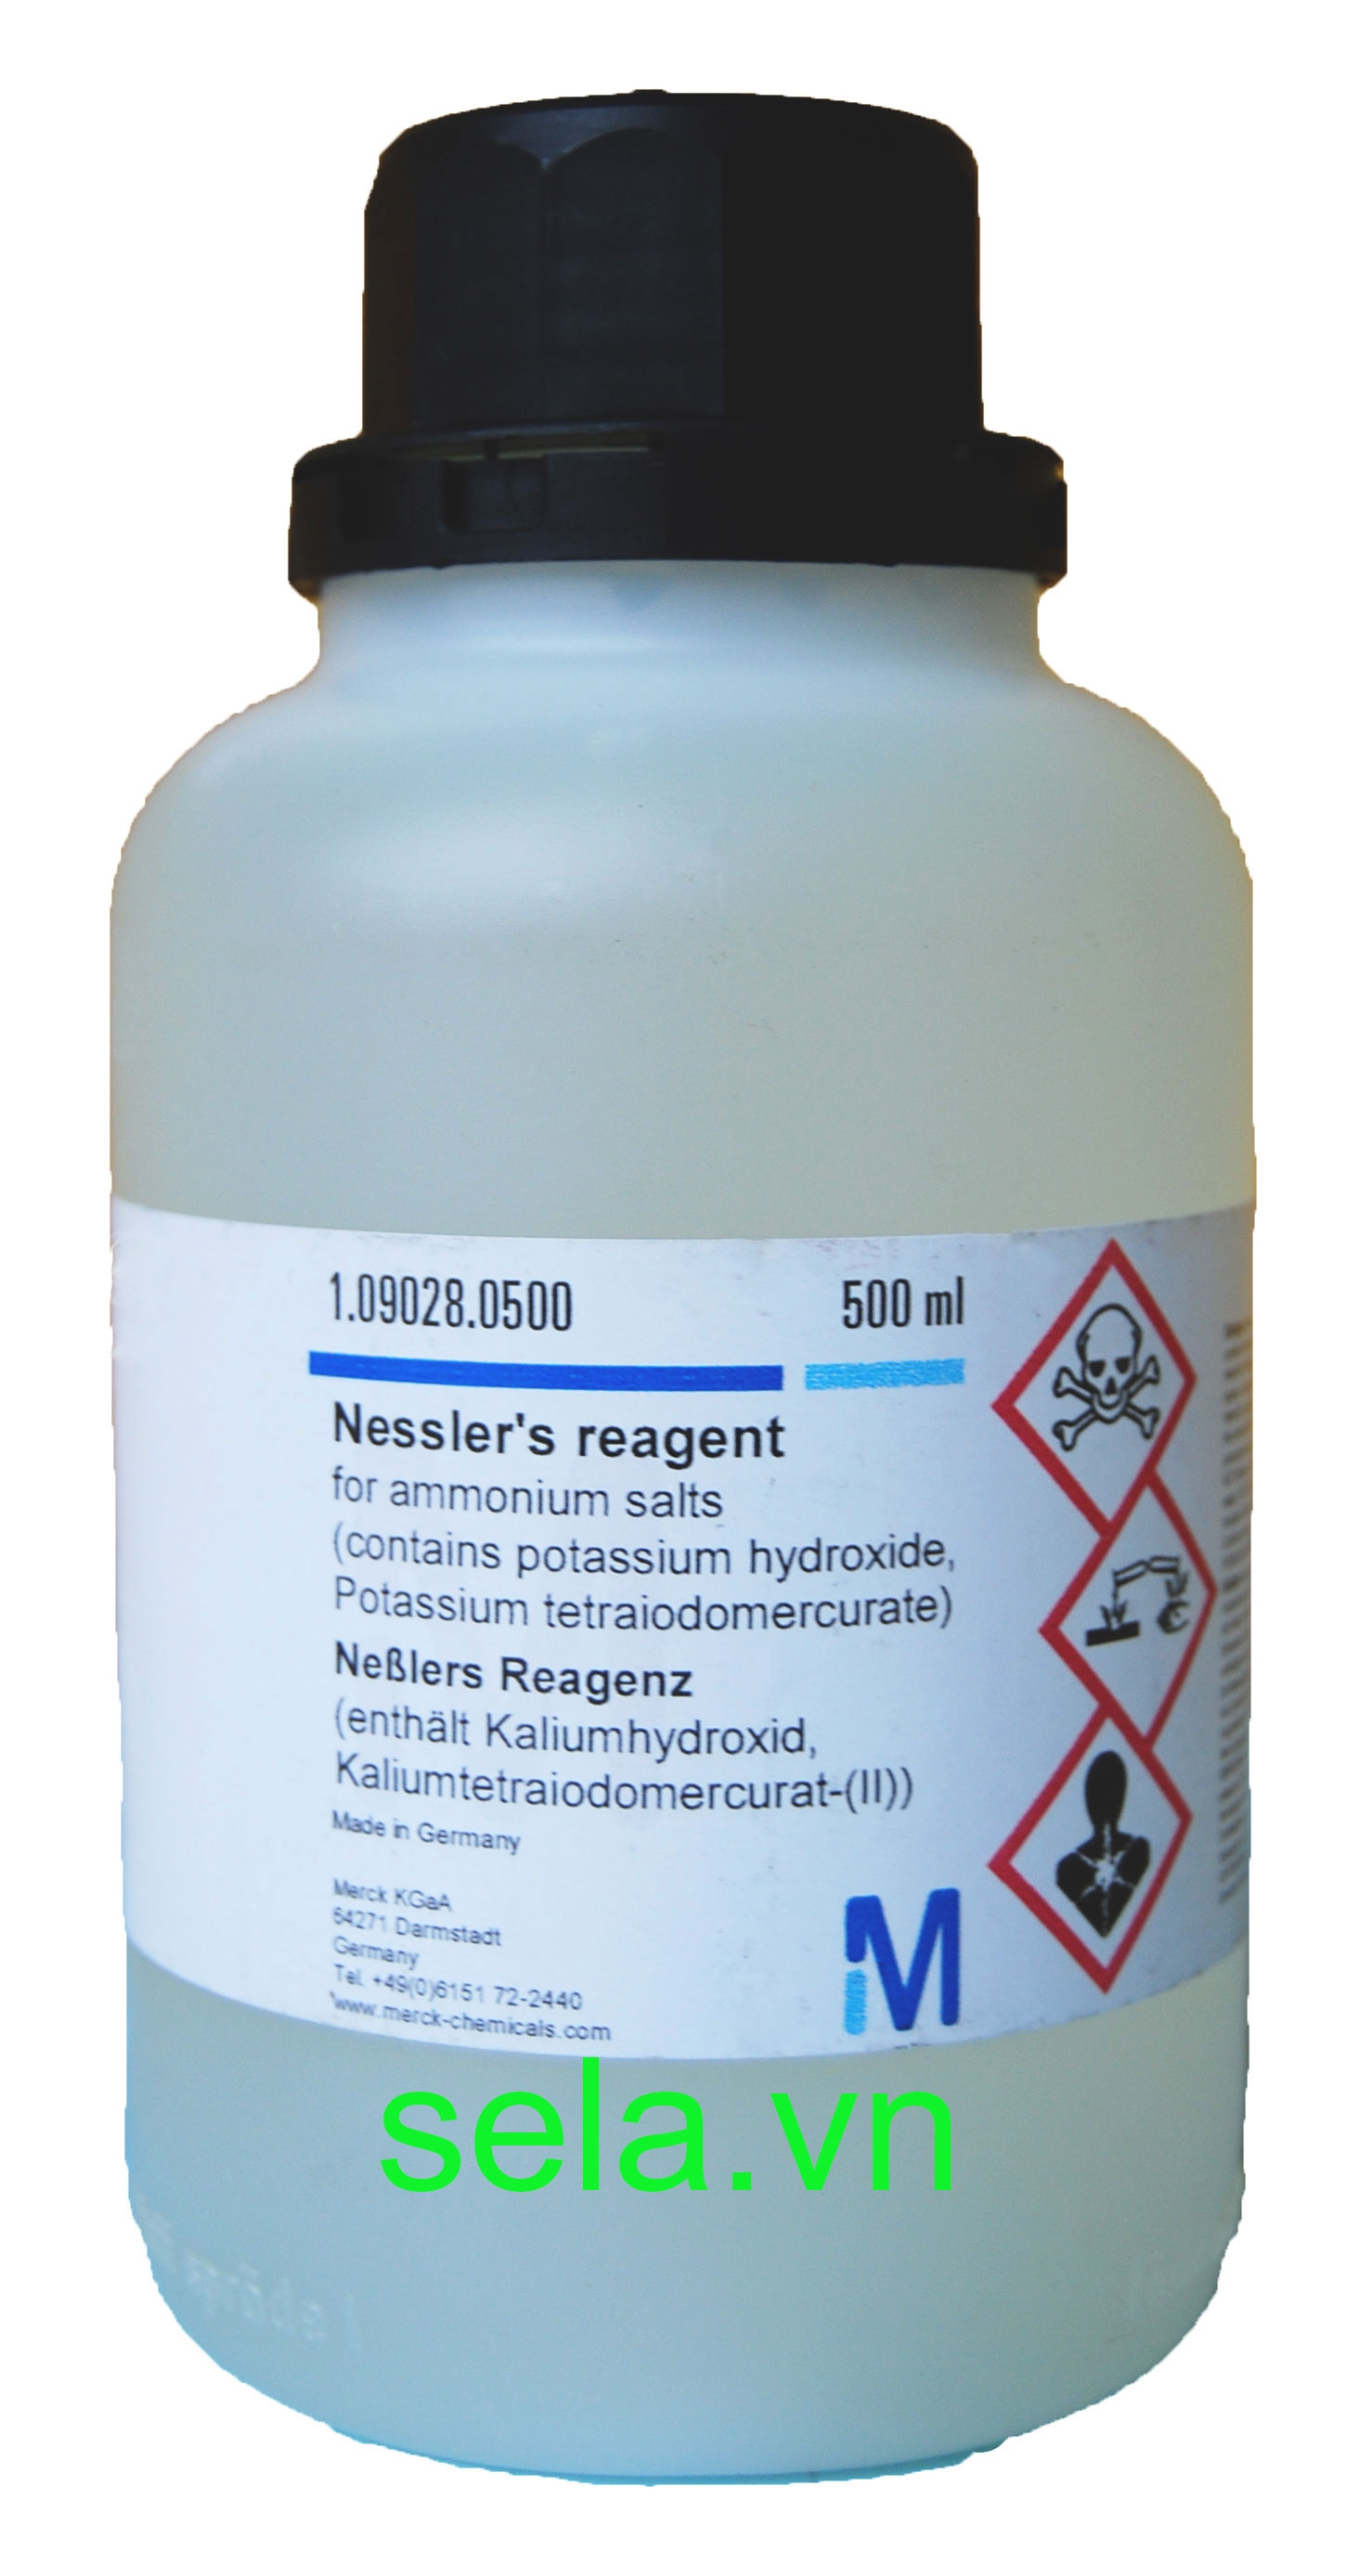 Nessler's reagent for ammonium salts